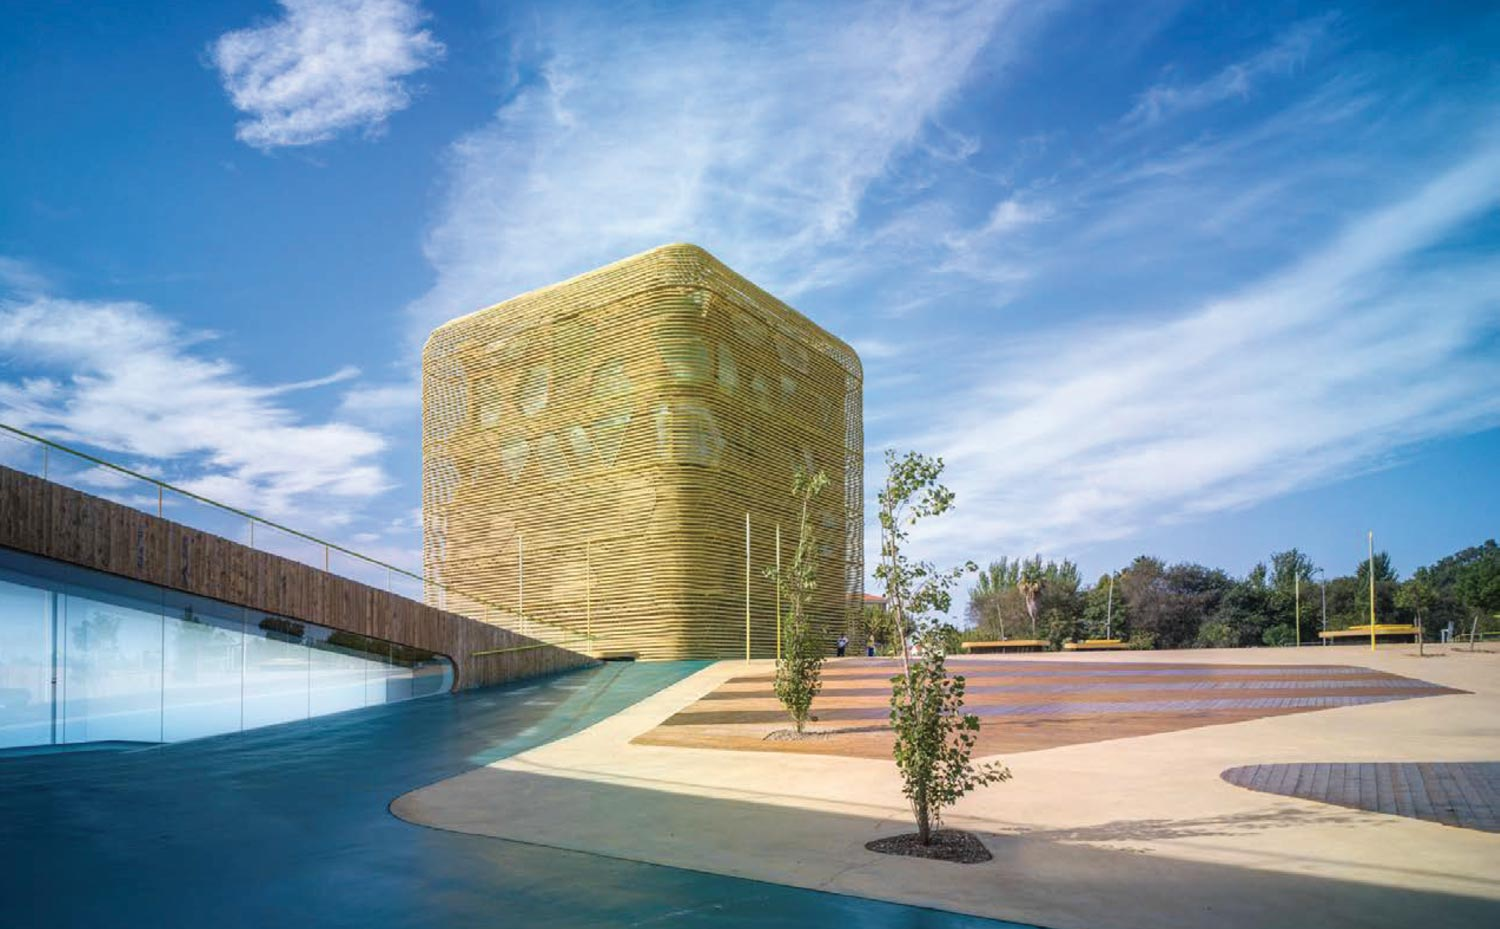 Architecture professors Luis Pancorbo and Inés Martín Robles won the Architecture MasterPrize for their design of Spain's Vegas Altas Congress Center.